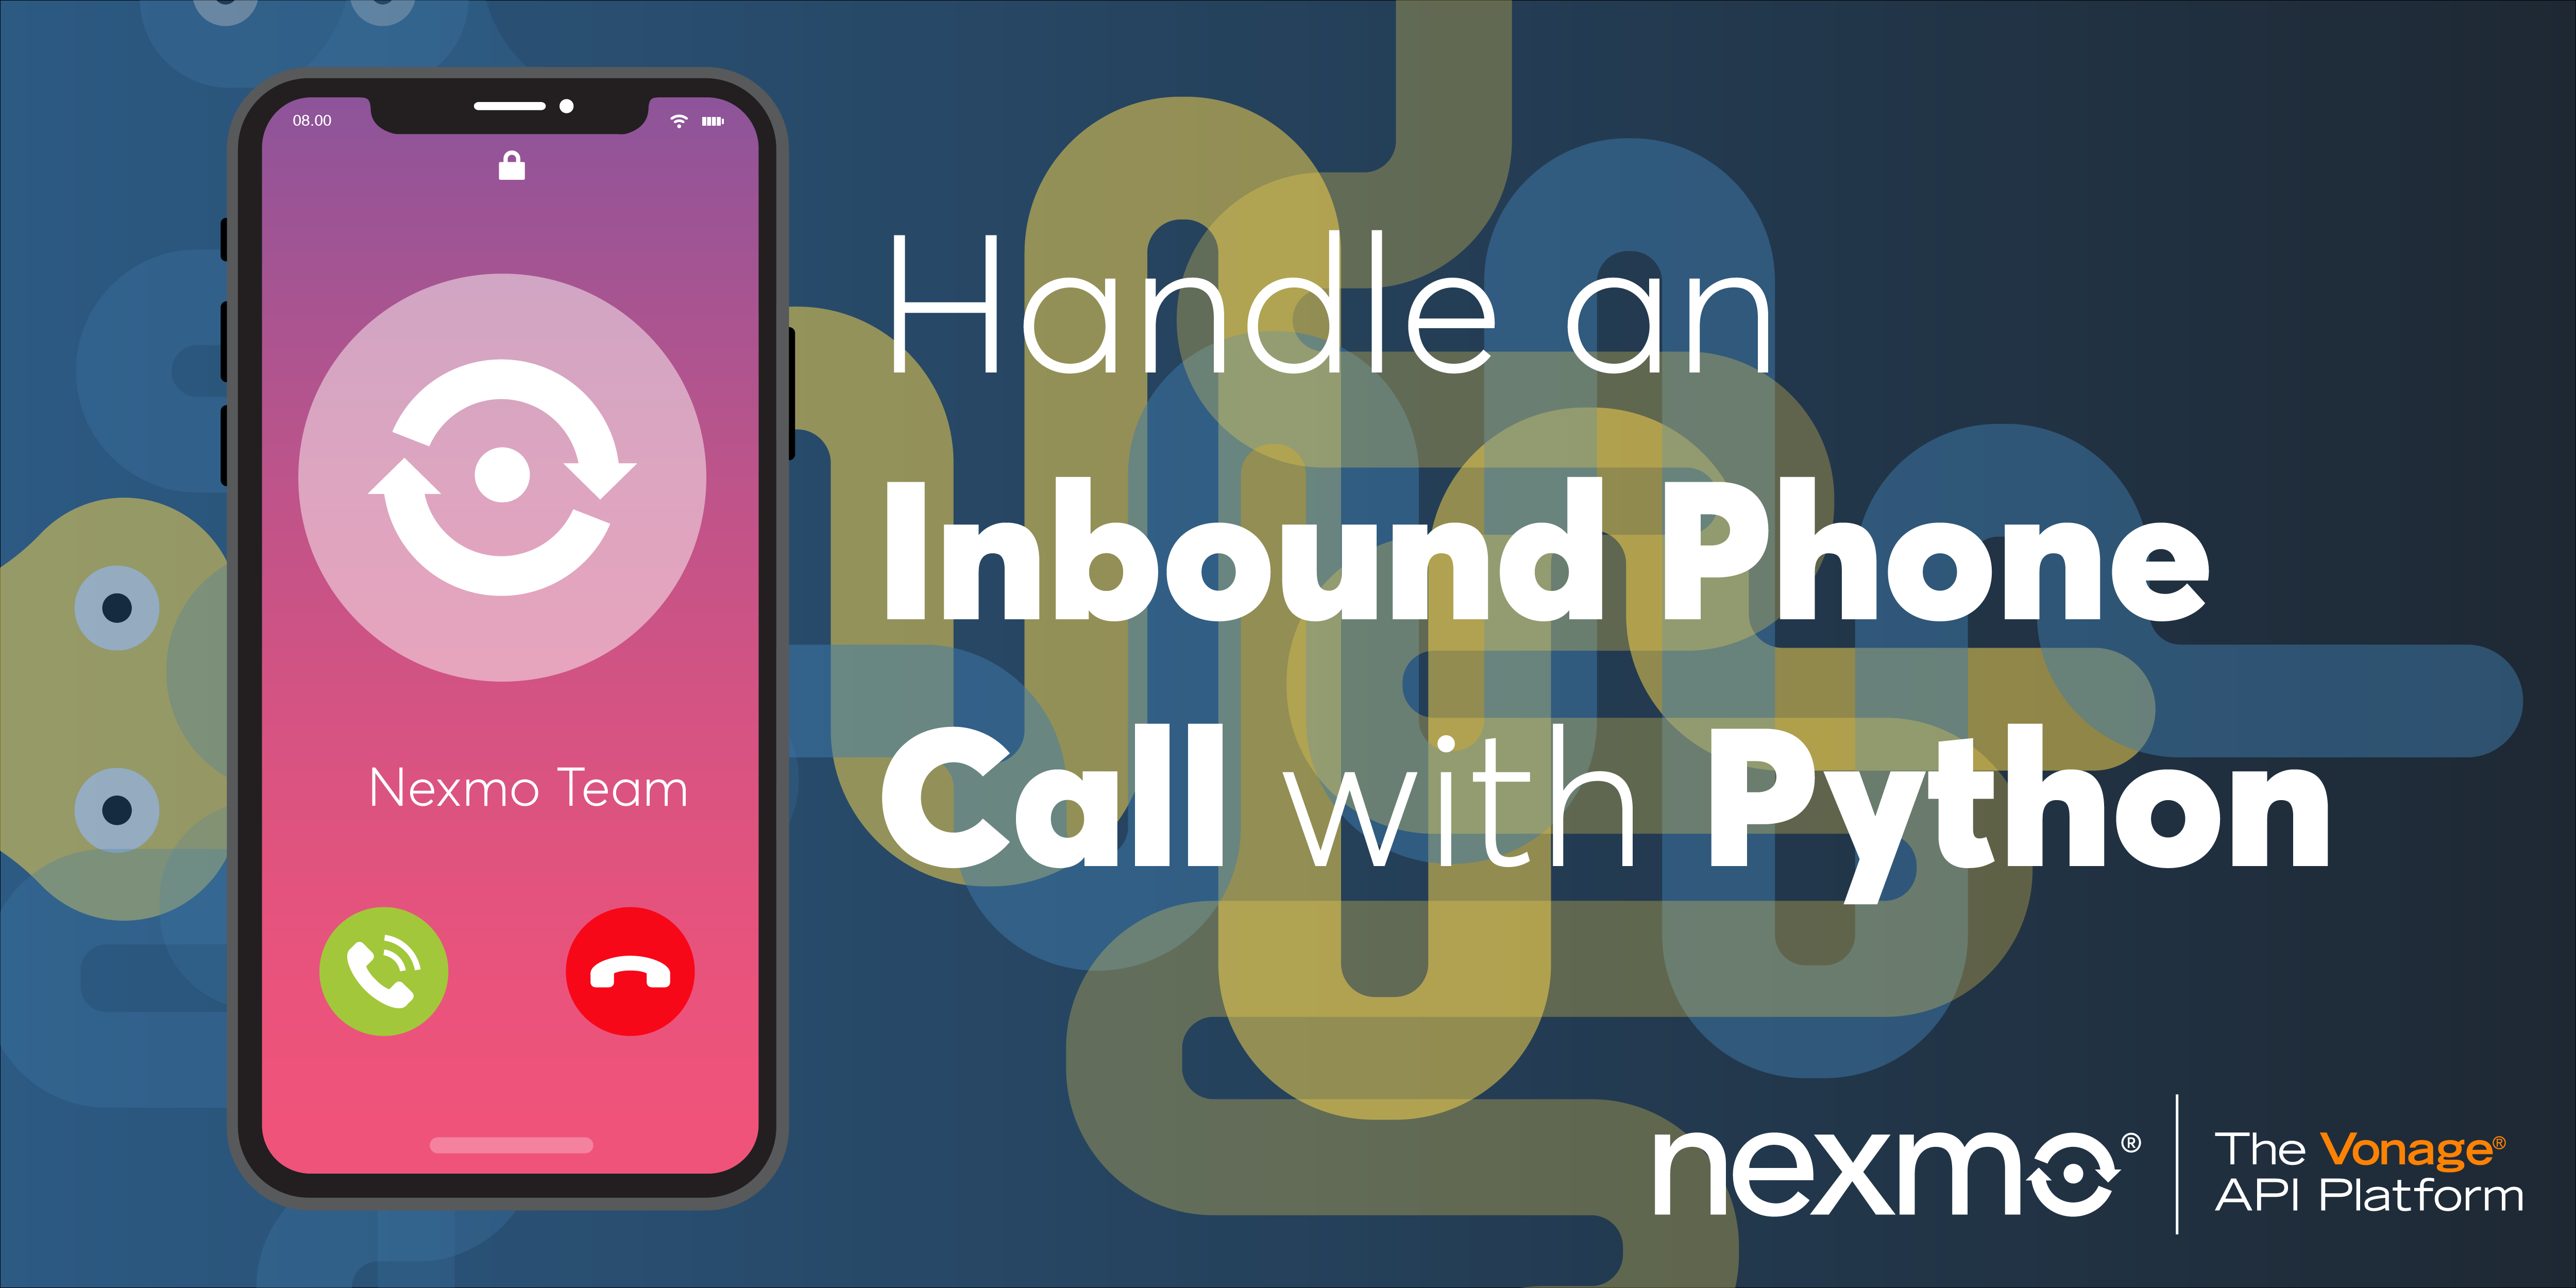 Handle an Inbound Phone Call with Python